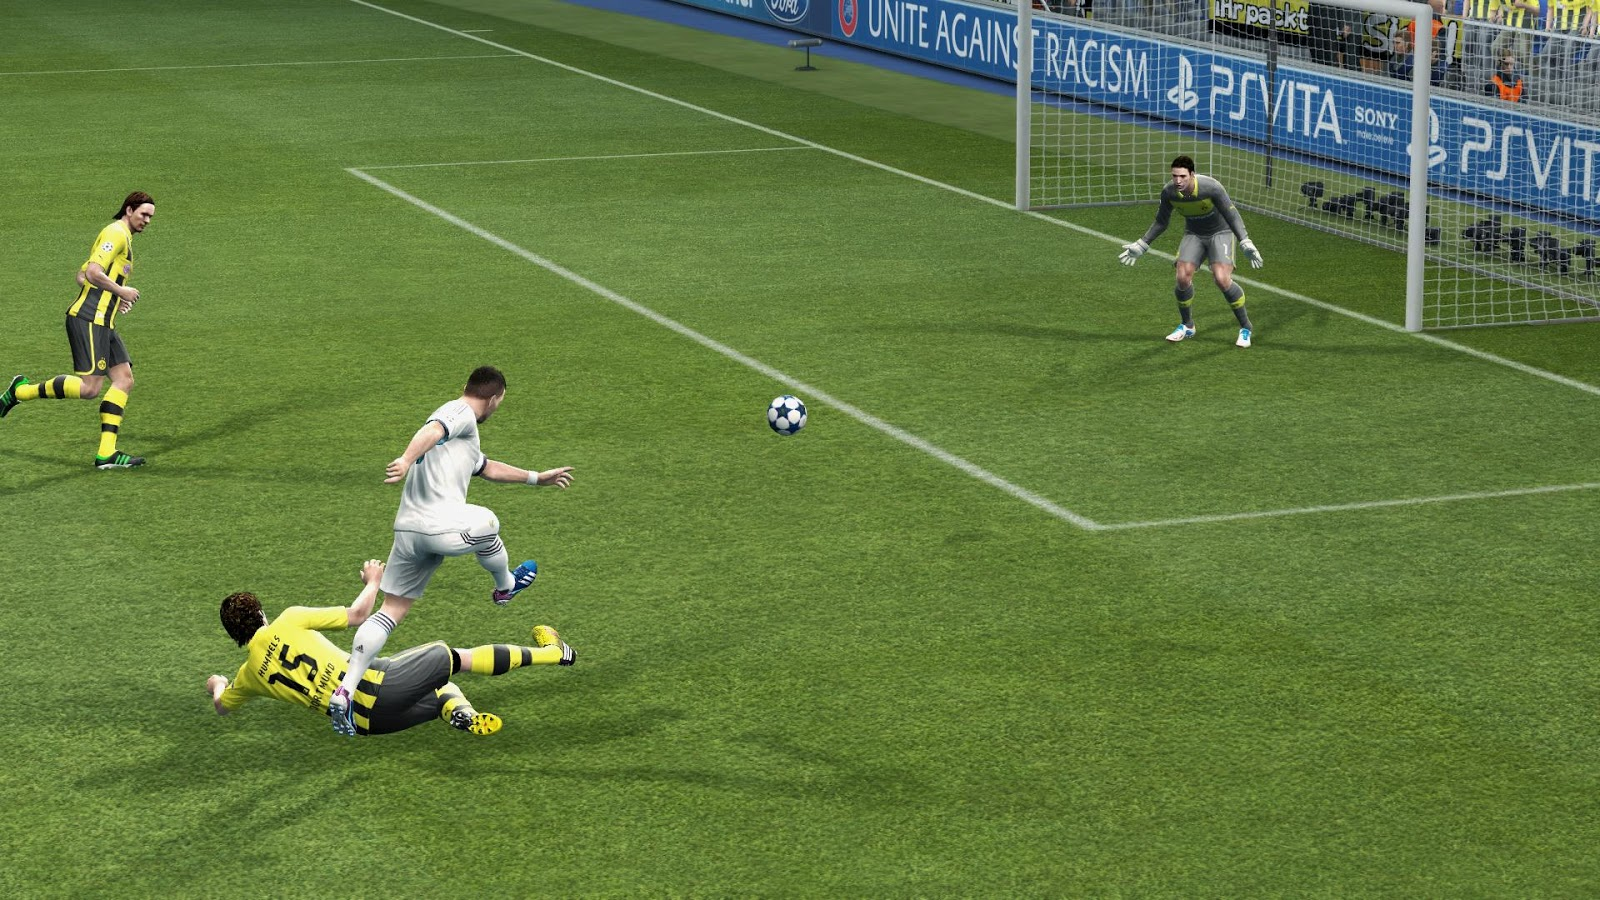 Download PESEDIT.com PES 2013 Patch 3.6 Terbaru